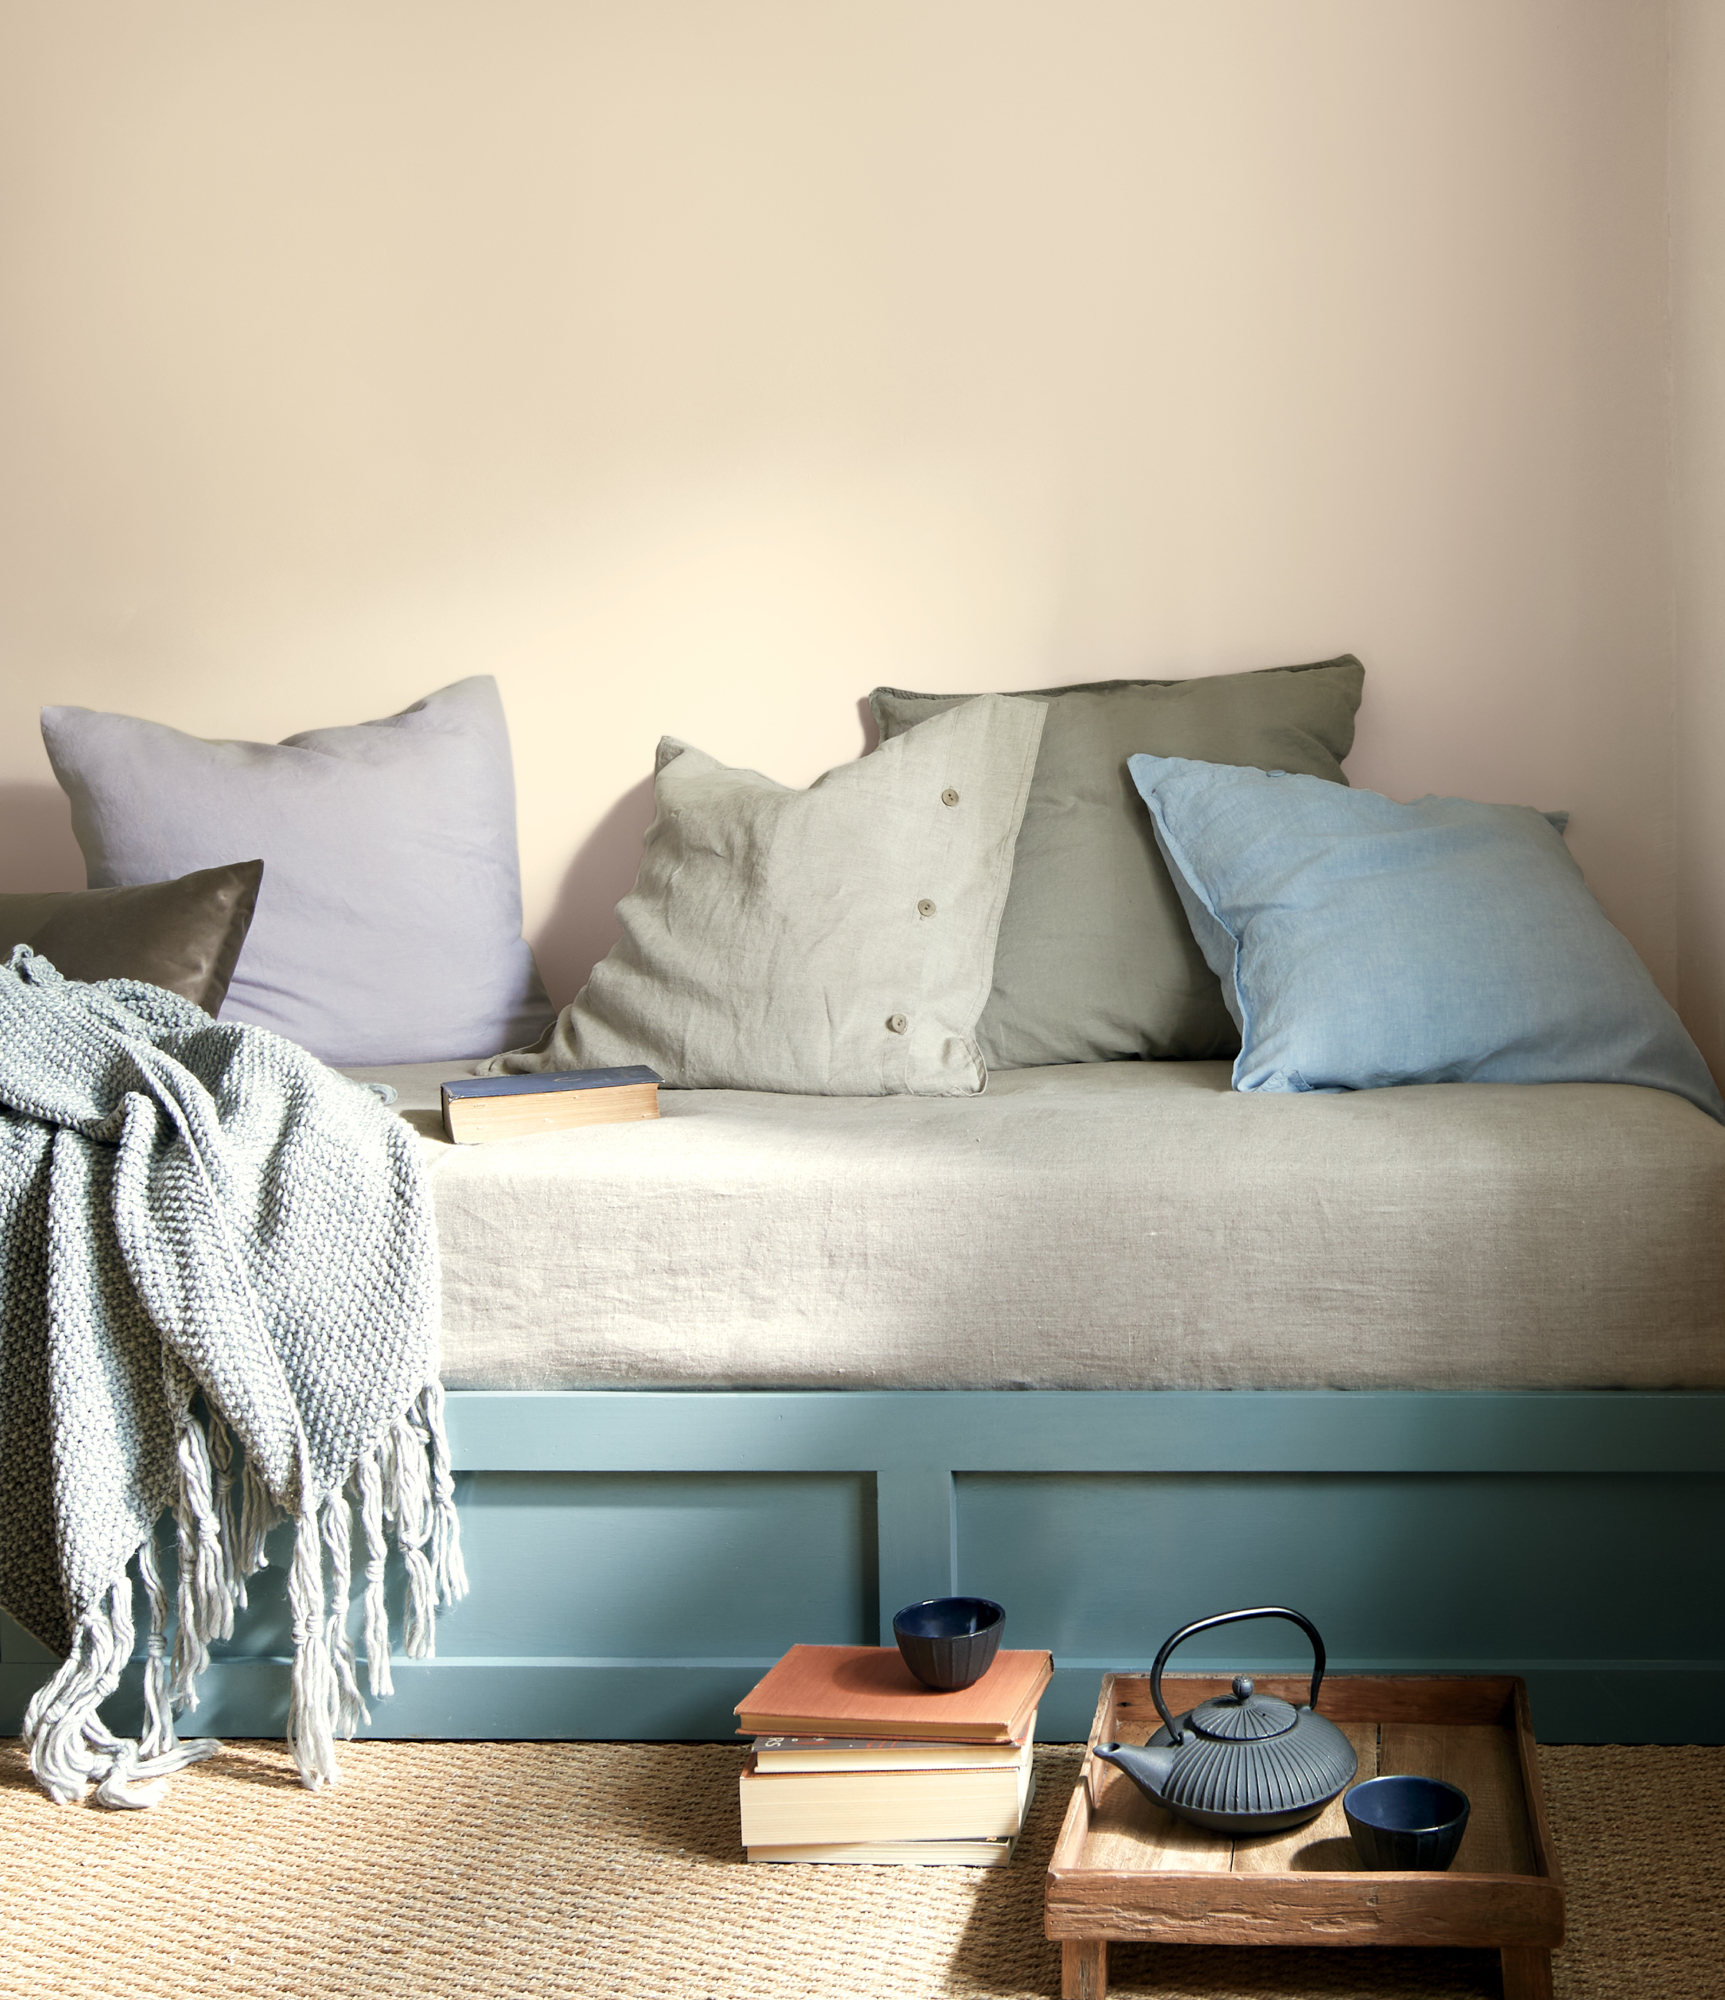 Benjamin Moore Aagean Teal Painted on Bench with cushion and pillows